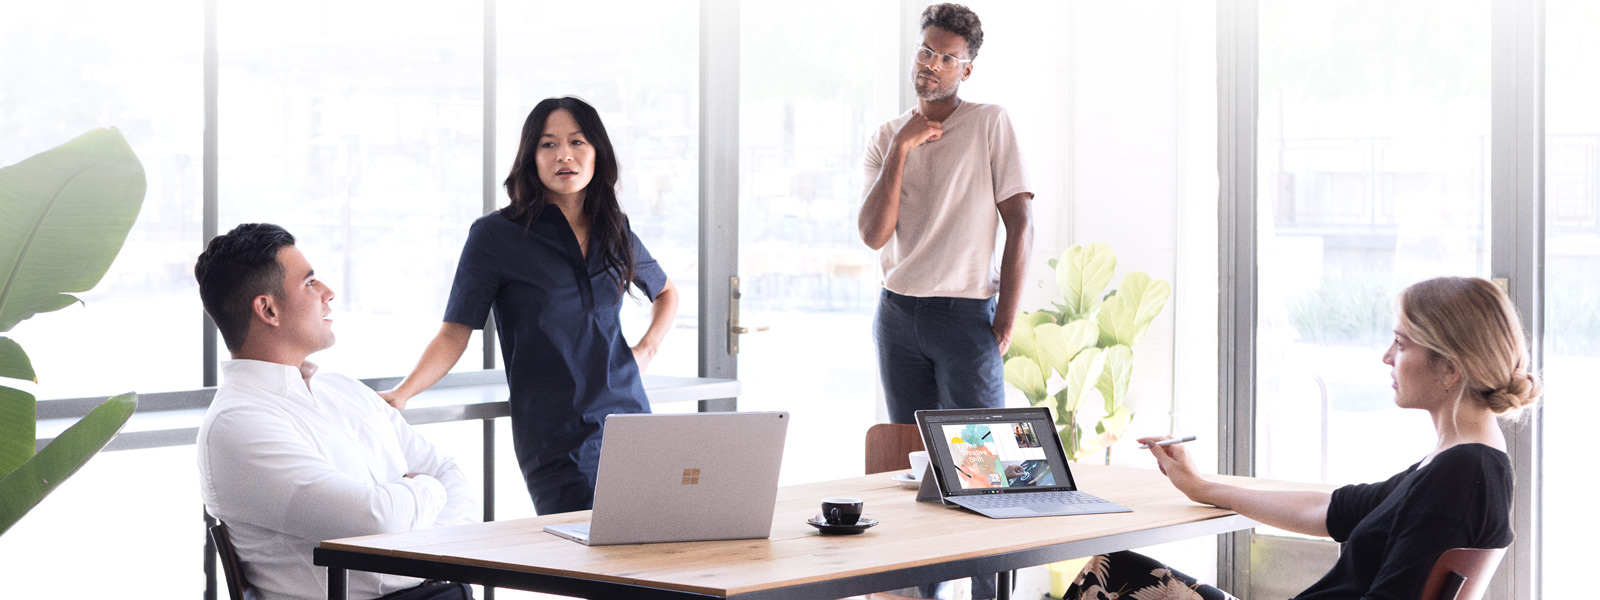 Team gathers around a conference table with Surface devices